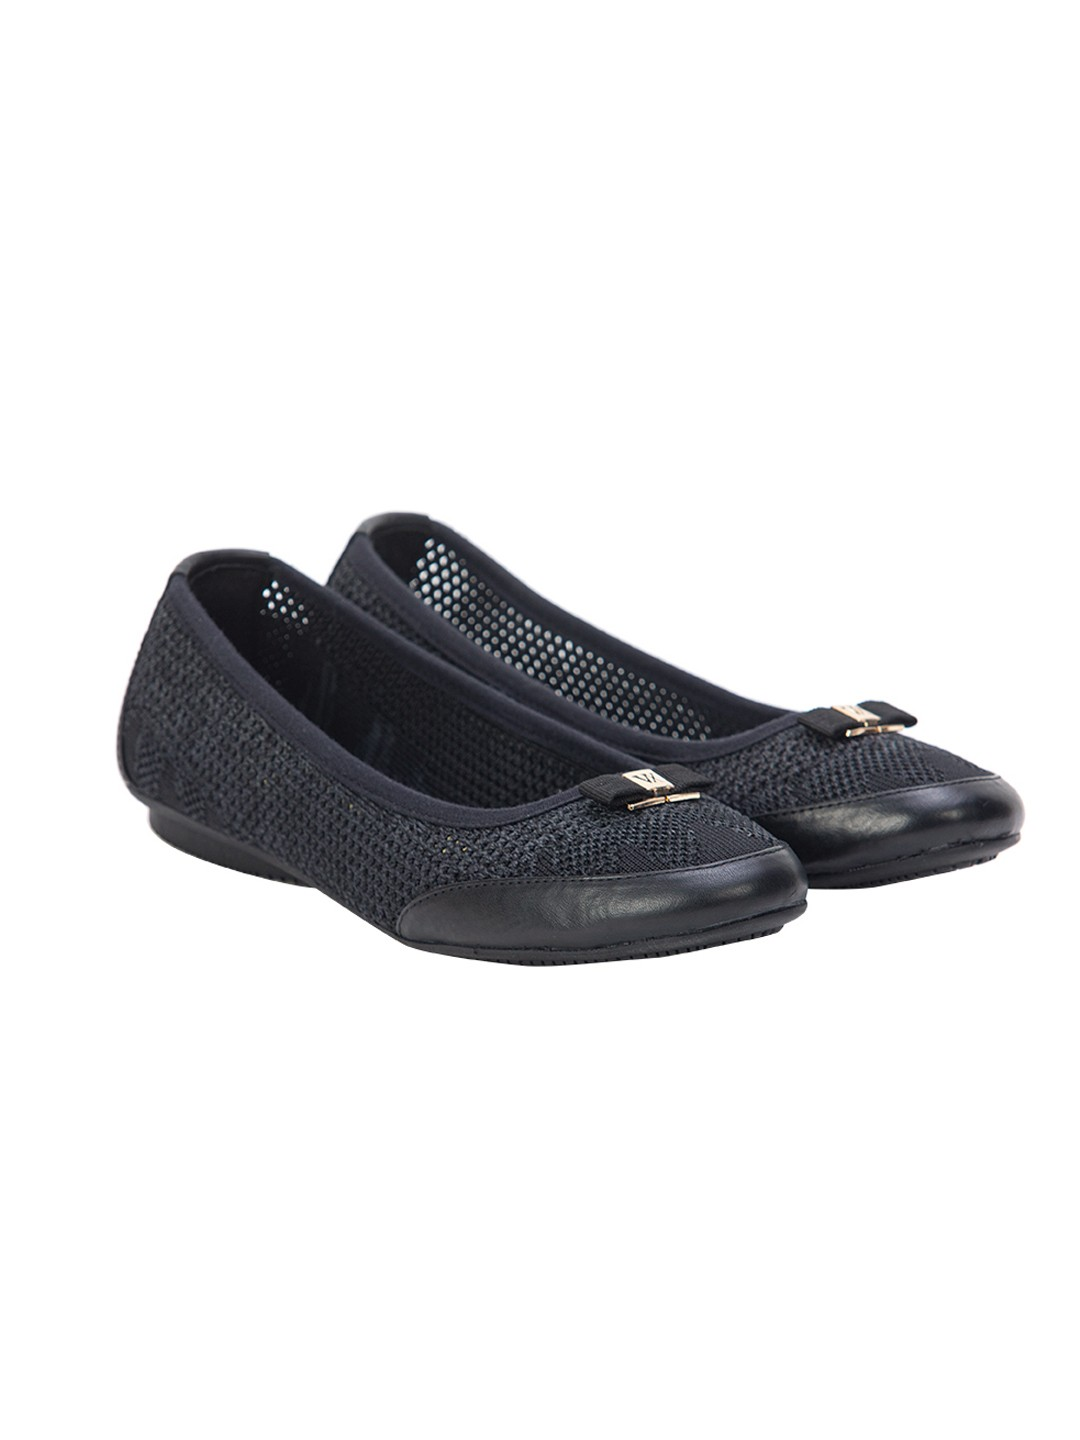 Buy Von Wellx Anise Comfort Black Belly Online in Indore